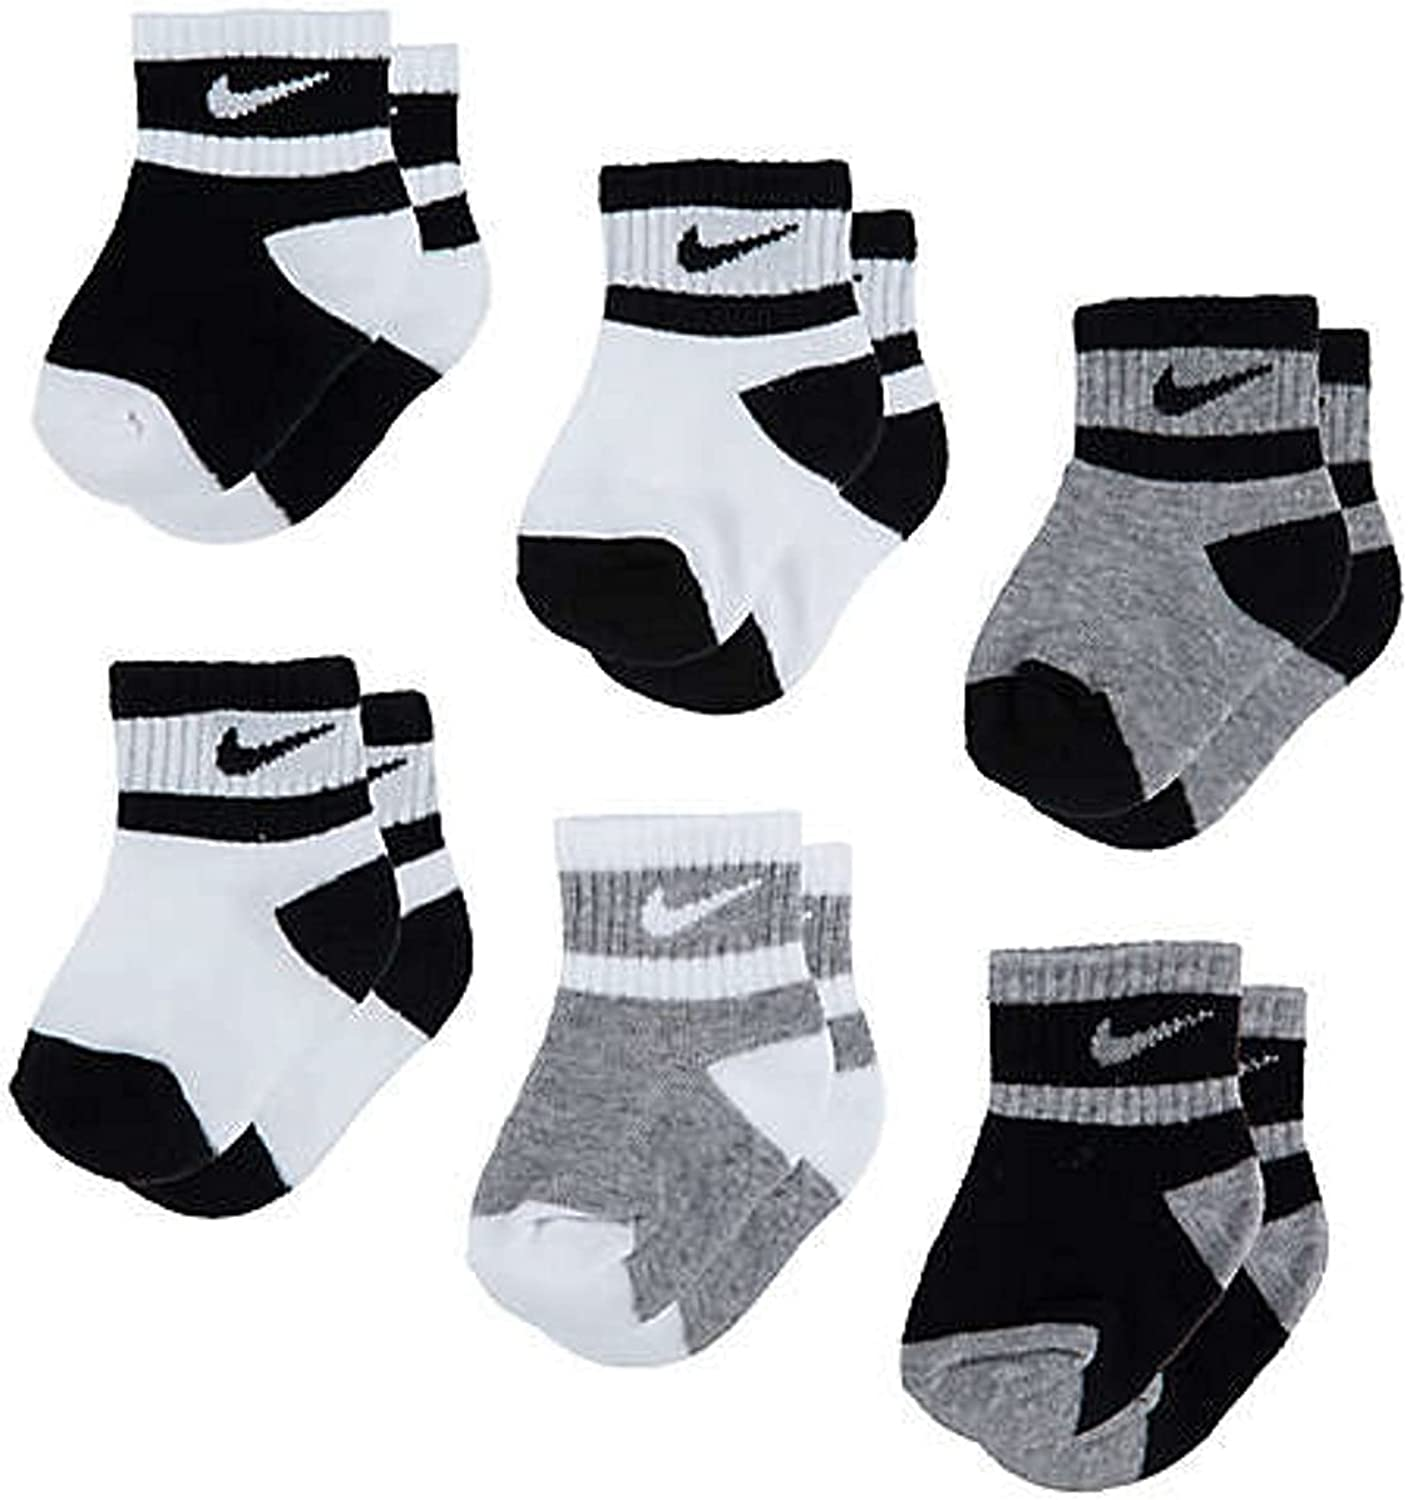 Nike Toddler 6 Pairs Lightweight Ankle Socks Size 2-4 Years